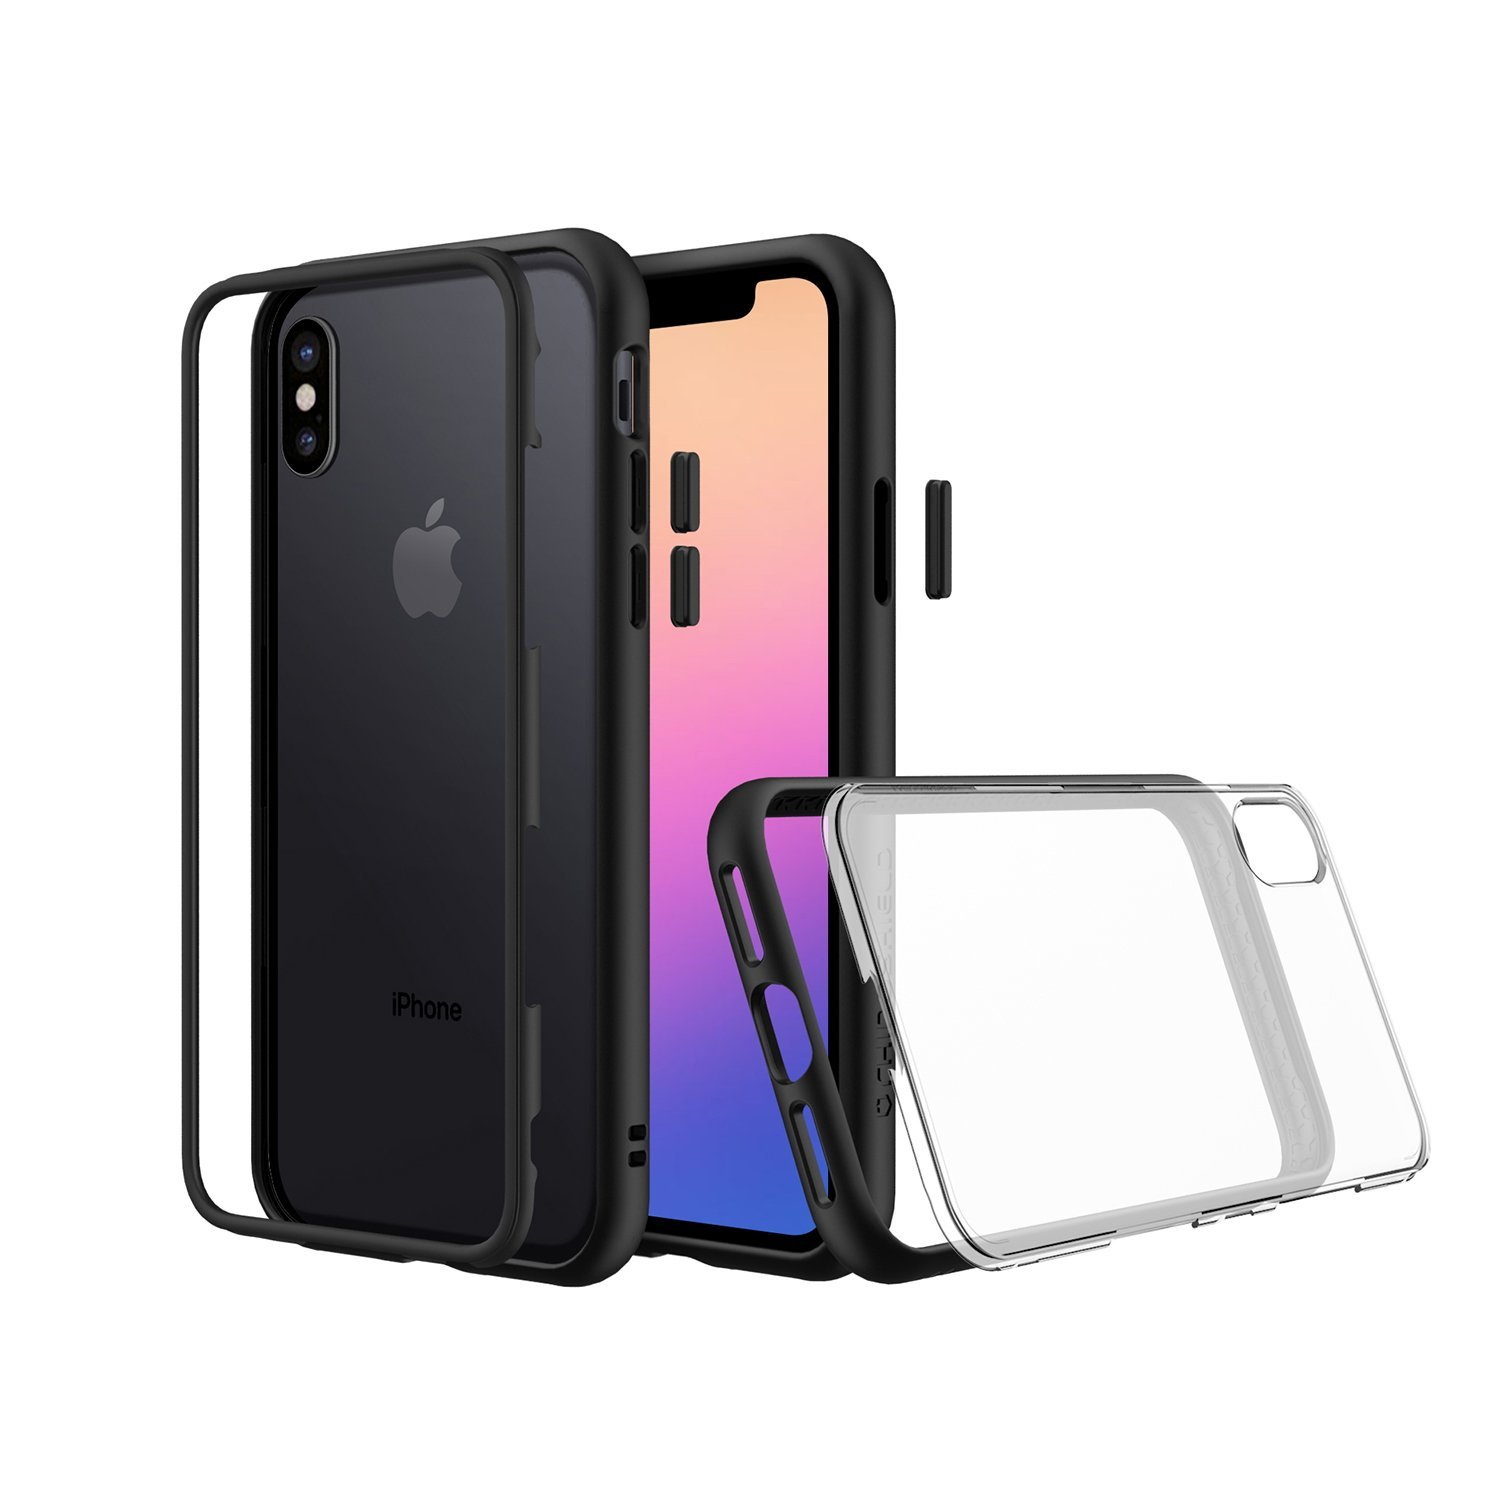 reputable site f70d2 55a7a RhinoShield Mod iPhone X Modular Case